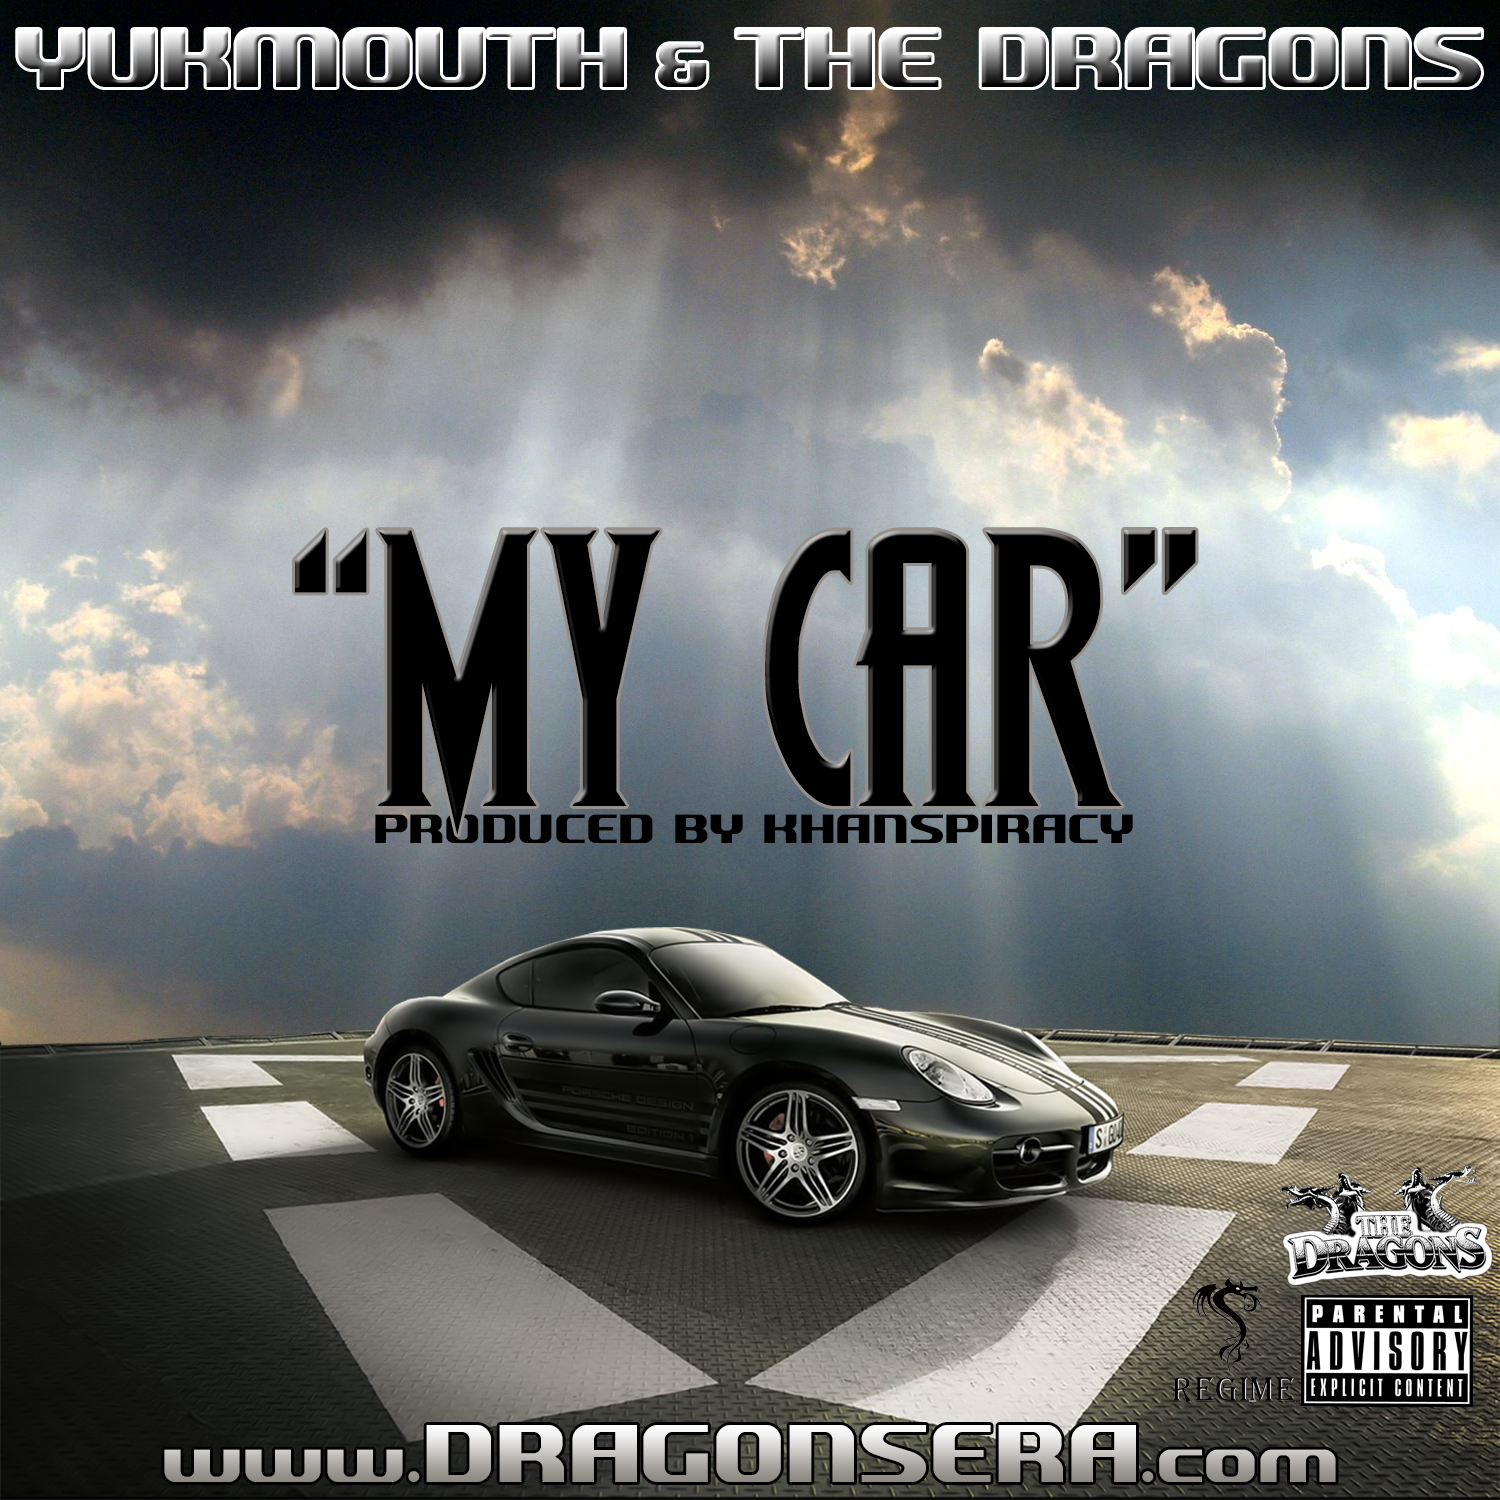 Yukmouth & The Dragons - My Car (Produced by Khanspiracy) [Thizzler.com]